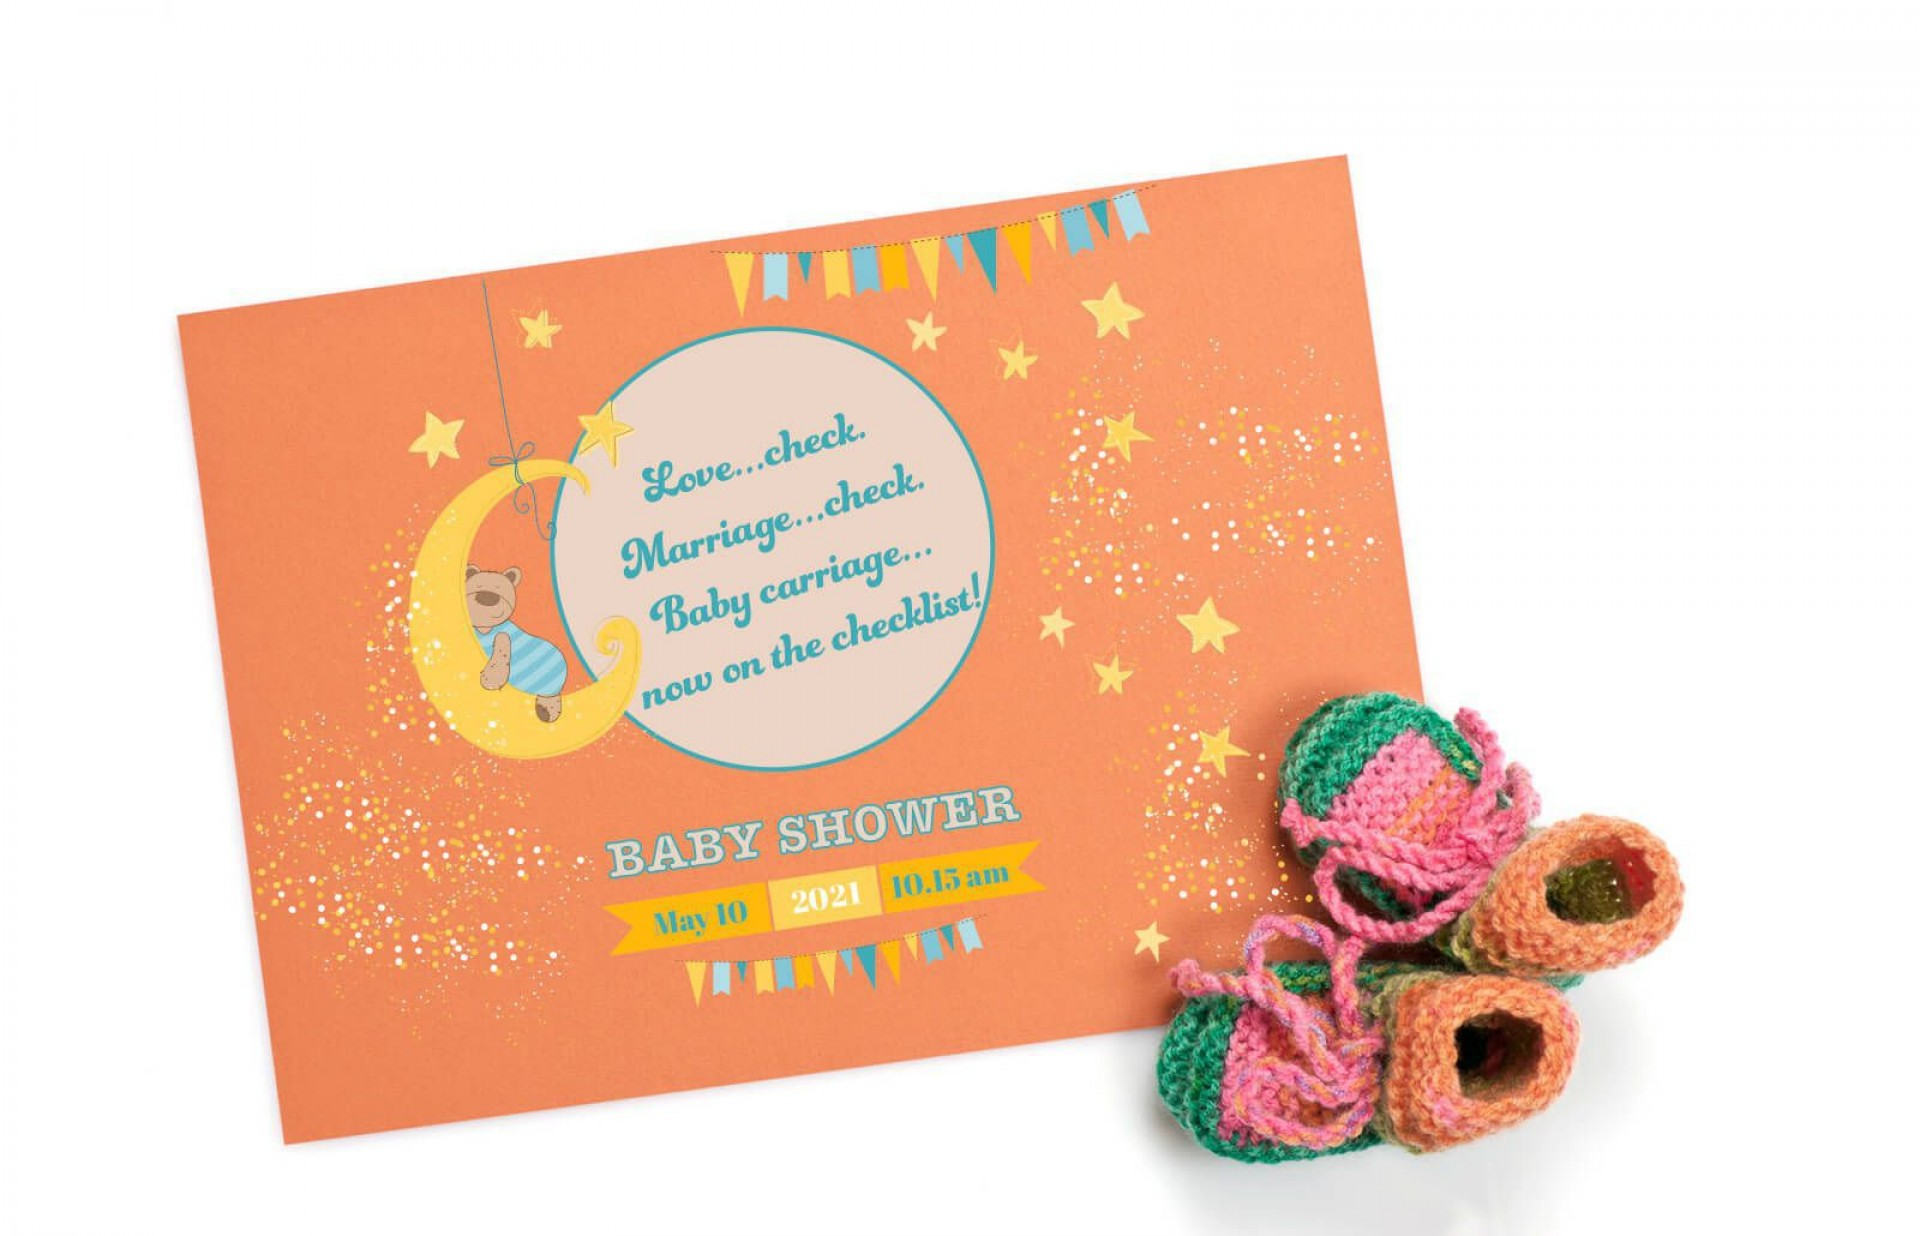 003 Awful Baby Shower Invitation Wording Example High Resolution  Examples Invite Coed Idea For Boy1920